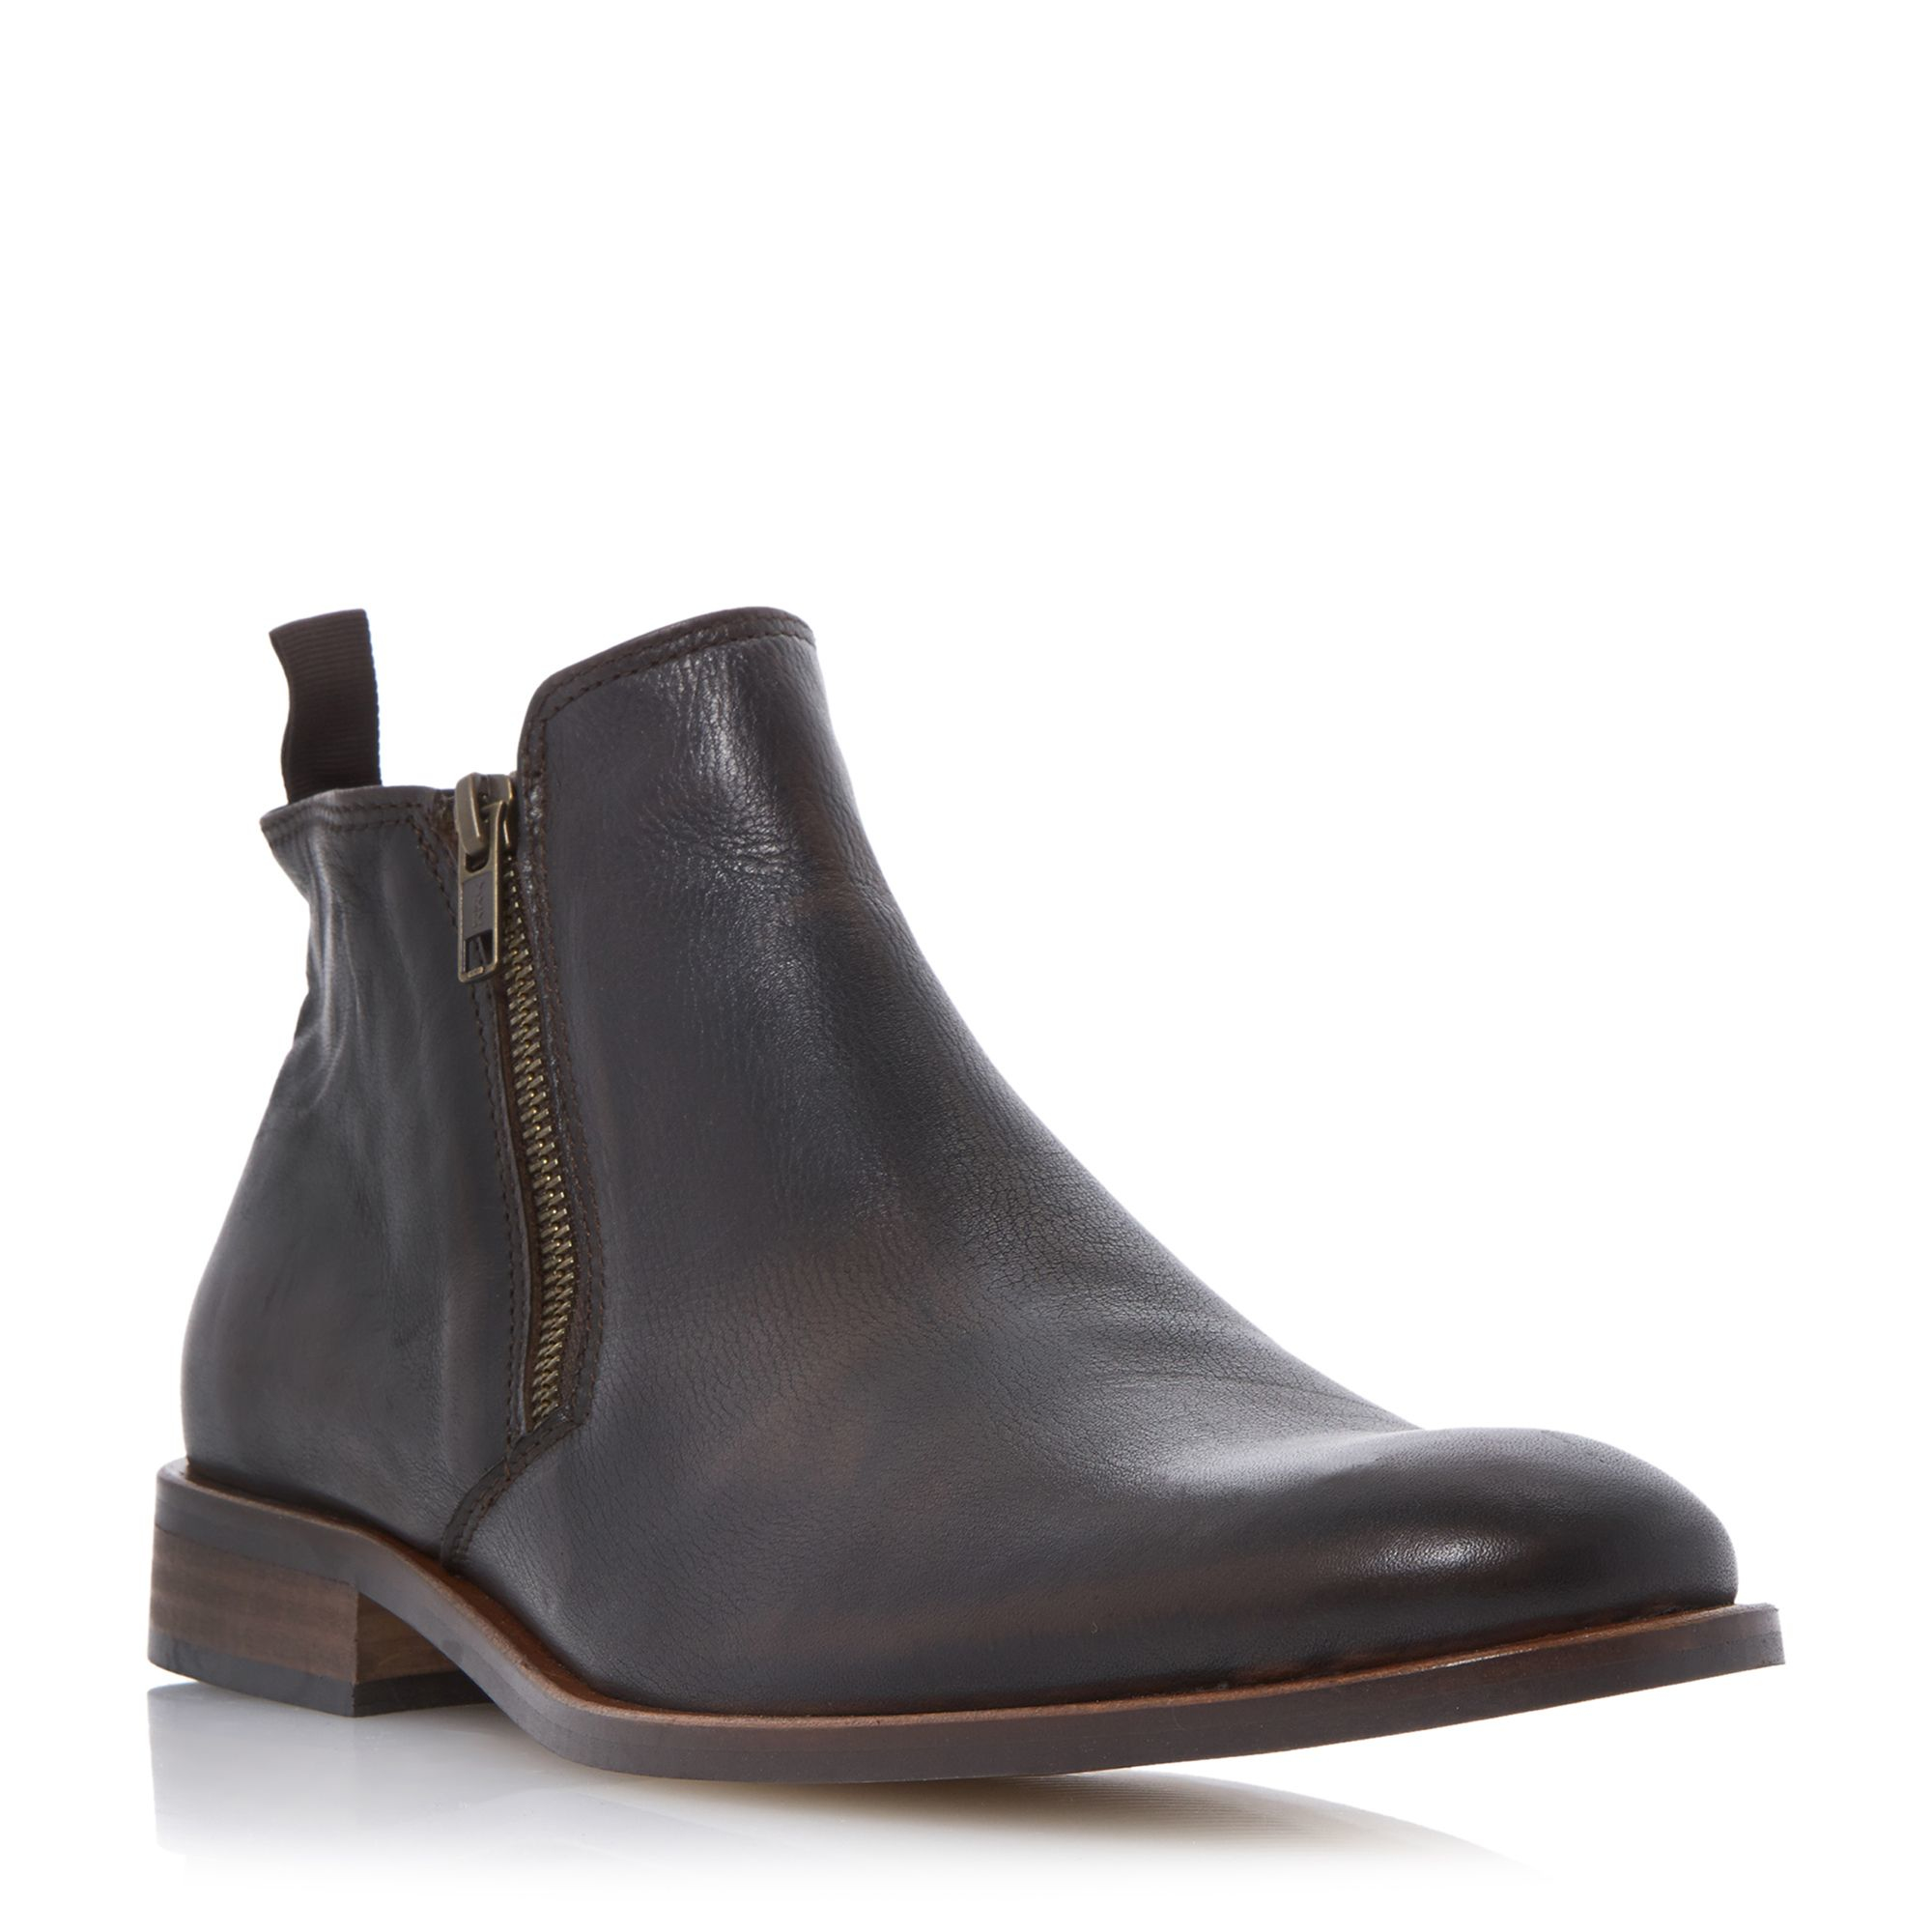 dune maccabee side zip leather ankle boots in brown for